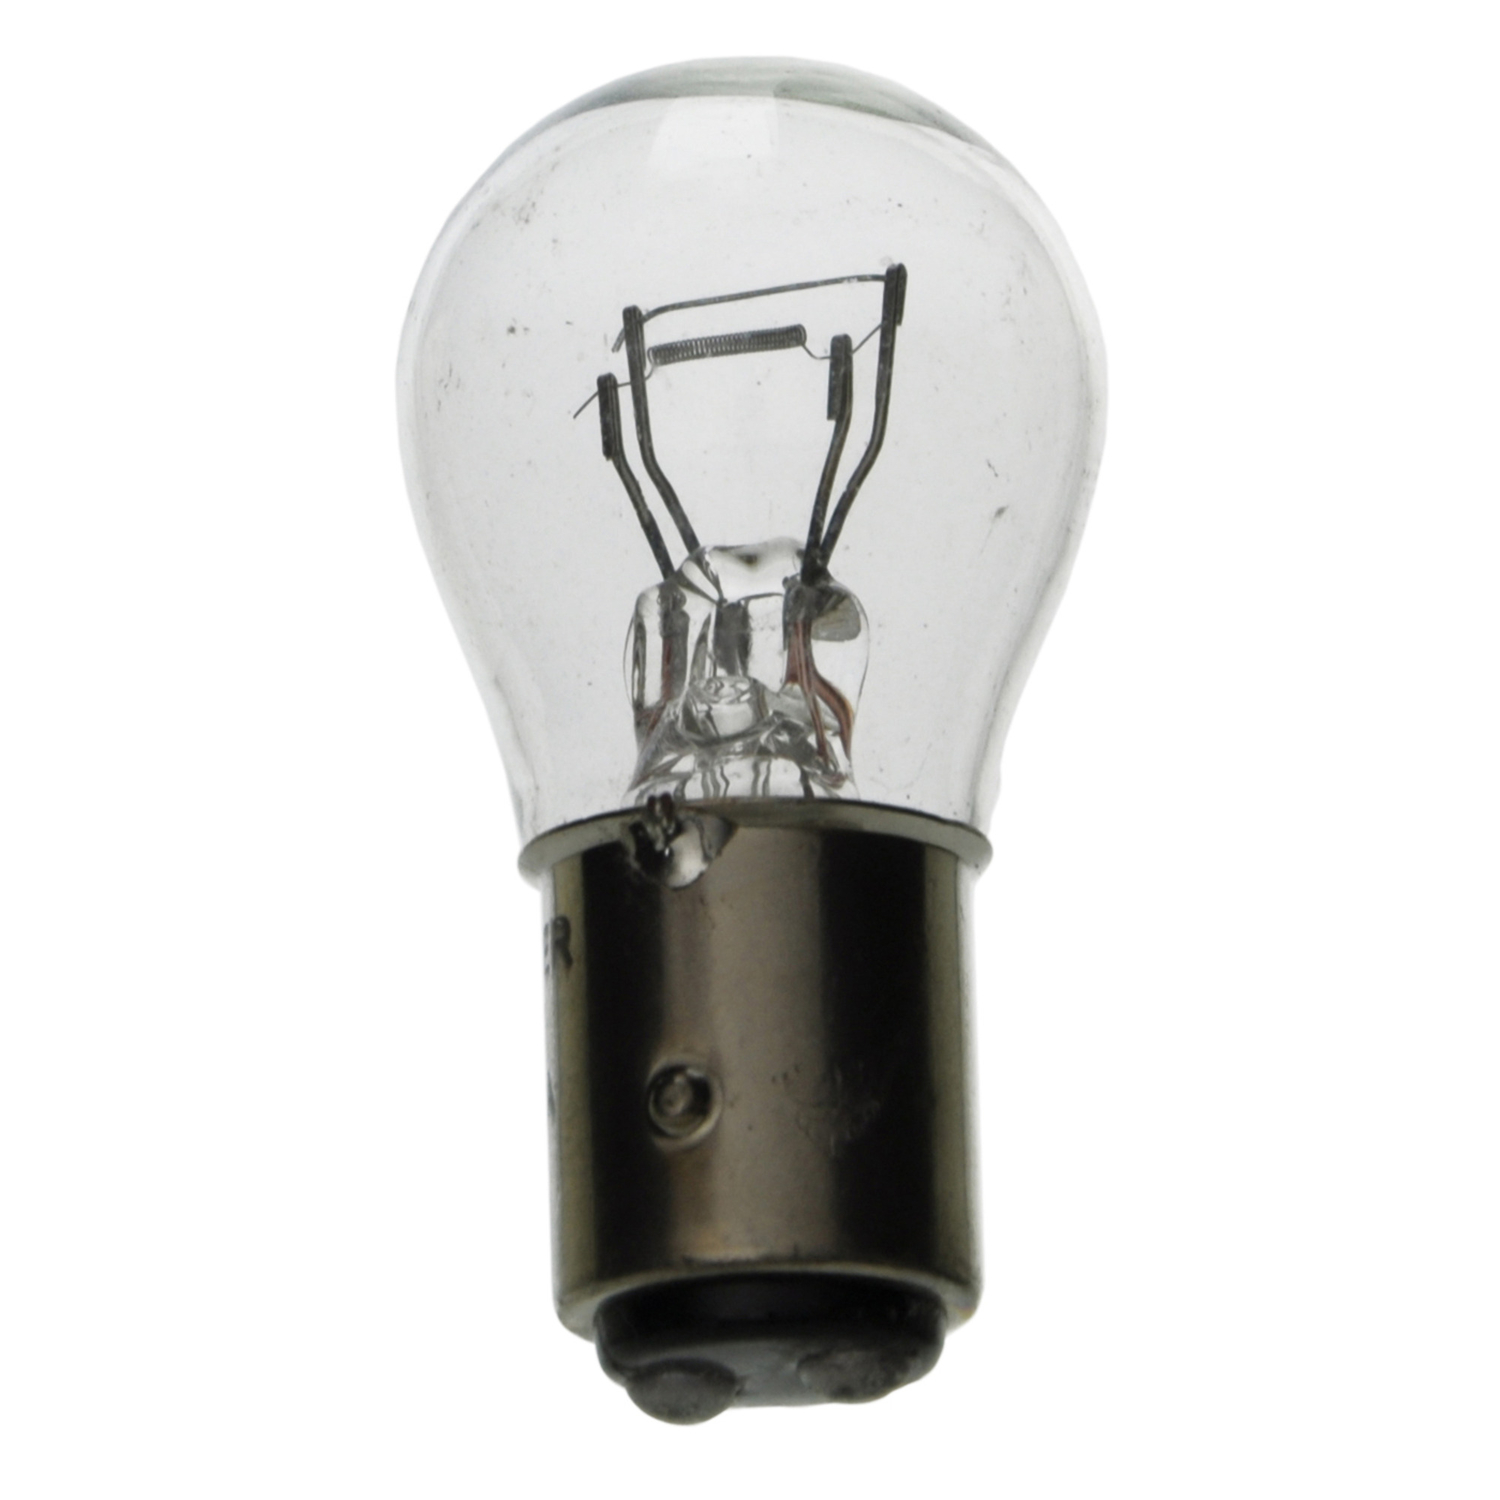 WAGNER LIGHTING - Turn Signal Light Bulb - WLP 1157